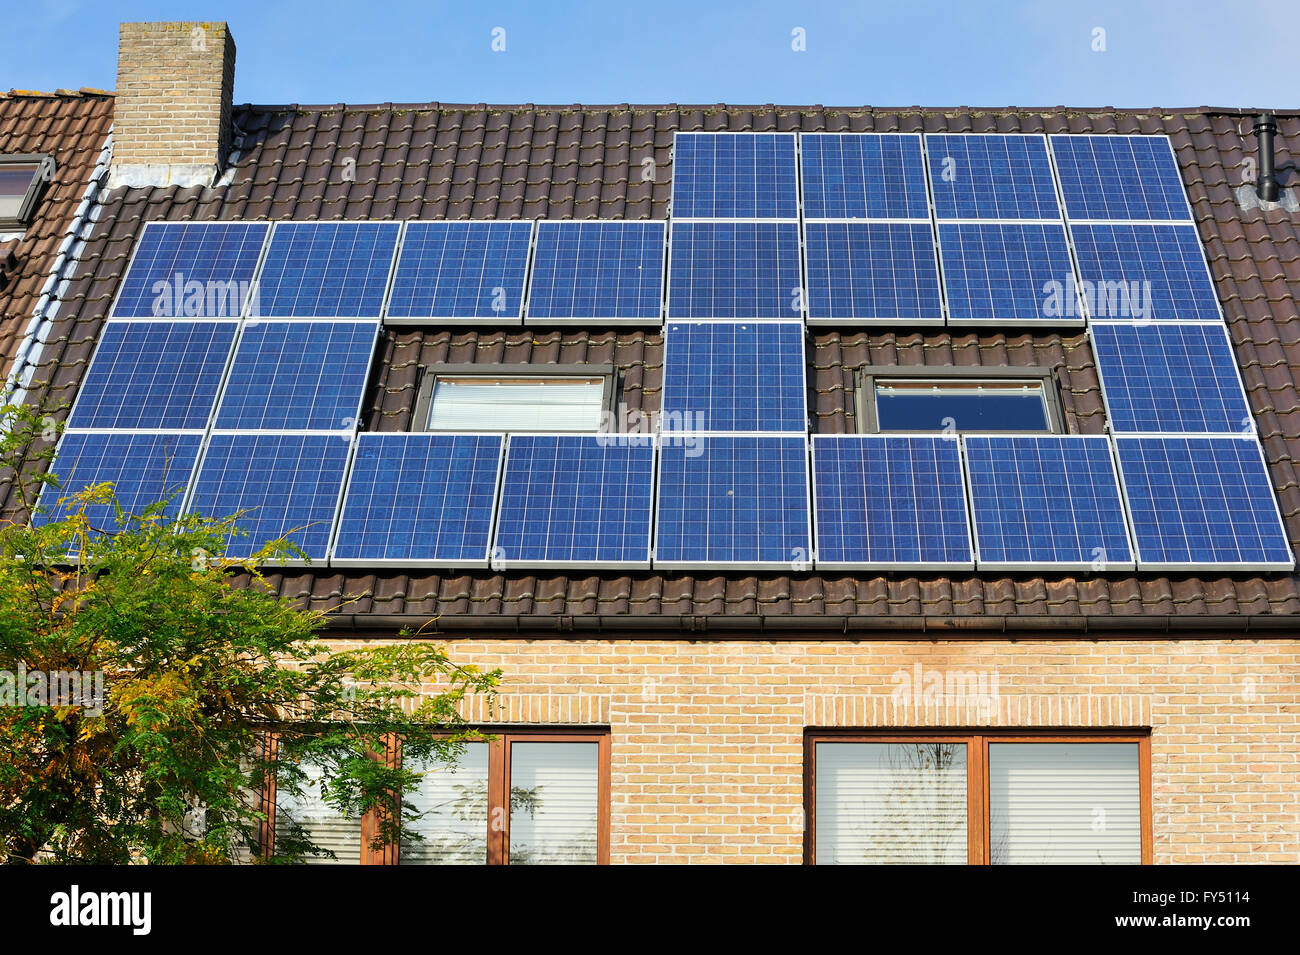 Photovoltaic solar panels / photovoltaic modules on roof of house - Stock Image